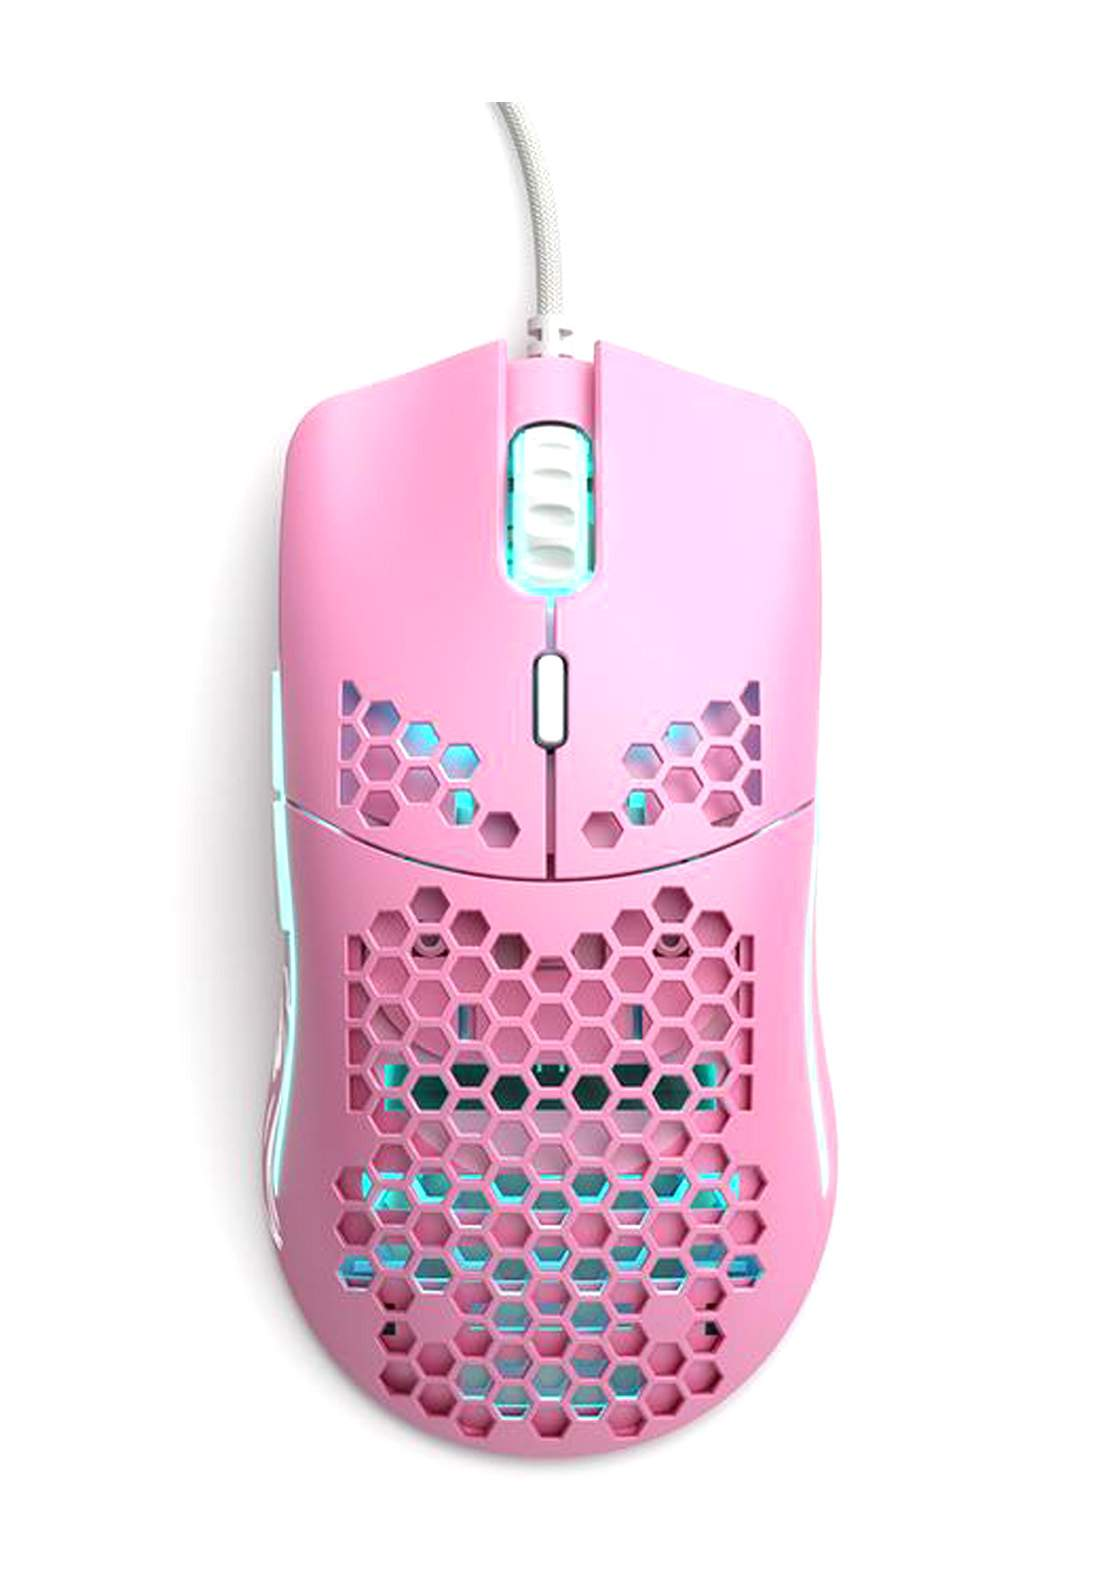 Glorious Model O- Gaming Mouse  - Pink ماوس